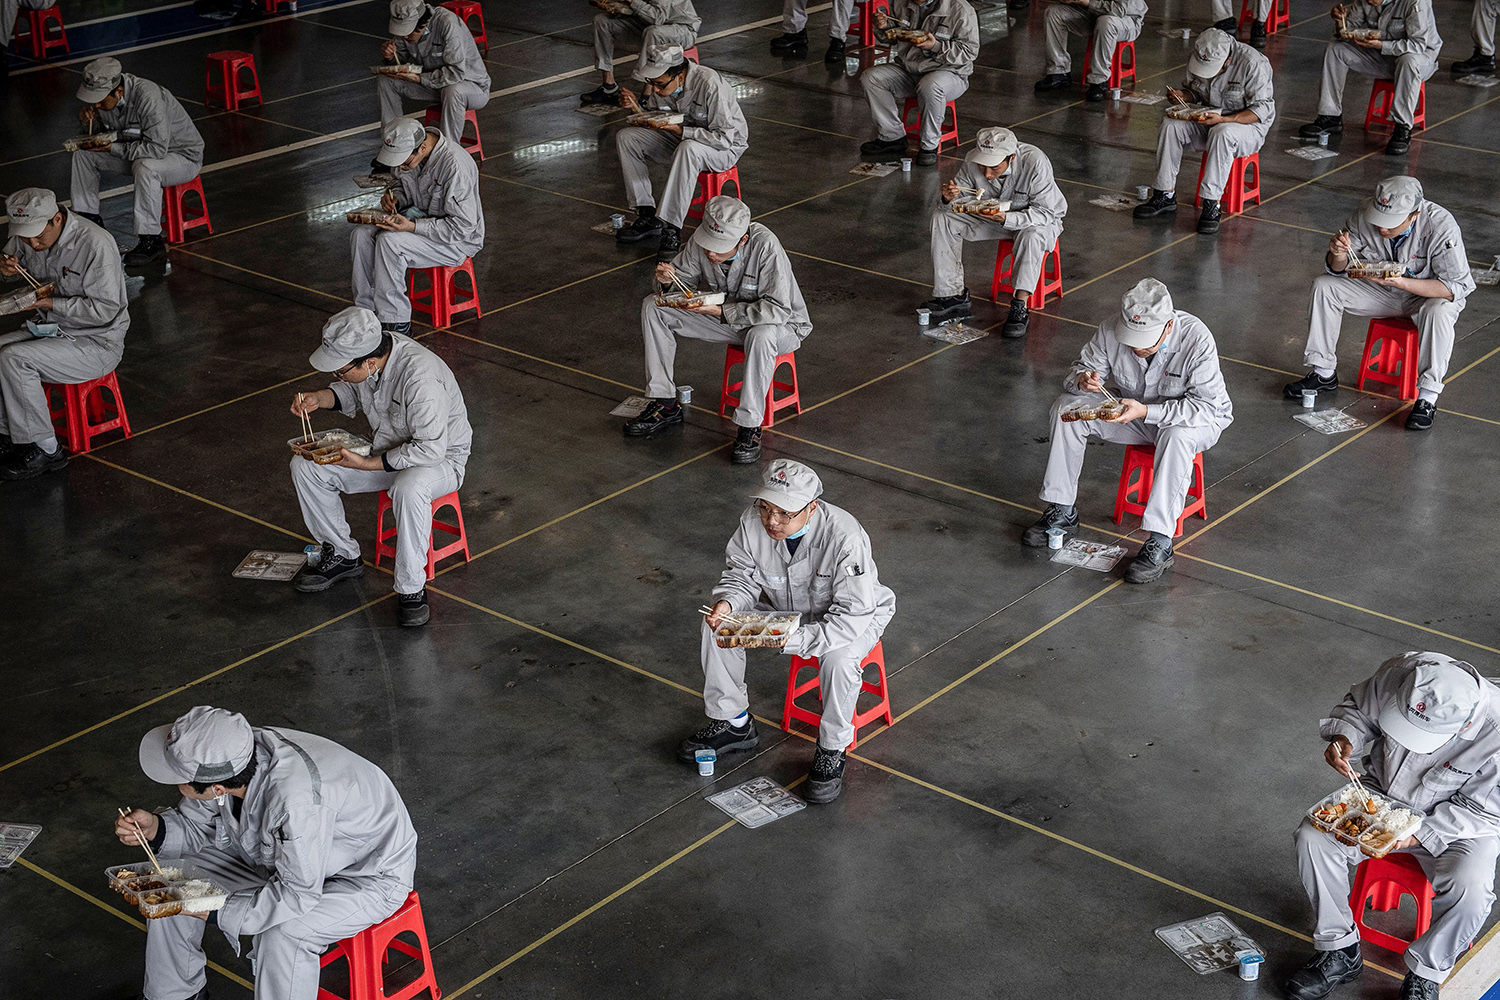 Employees practice social distancing while eating lunch on their break at the Dongfeng Honda auto plant in Wuhan, China, on March 23. STR/AFP via Getty Images